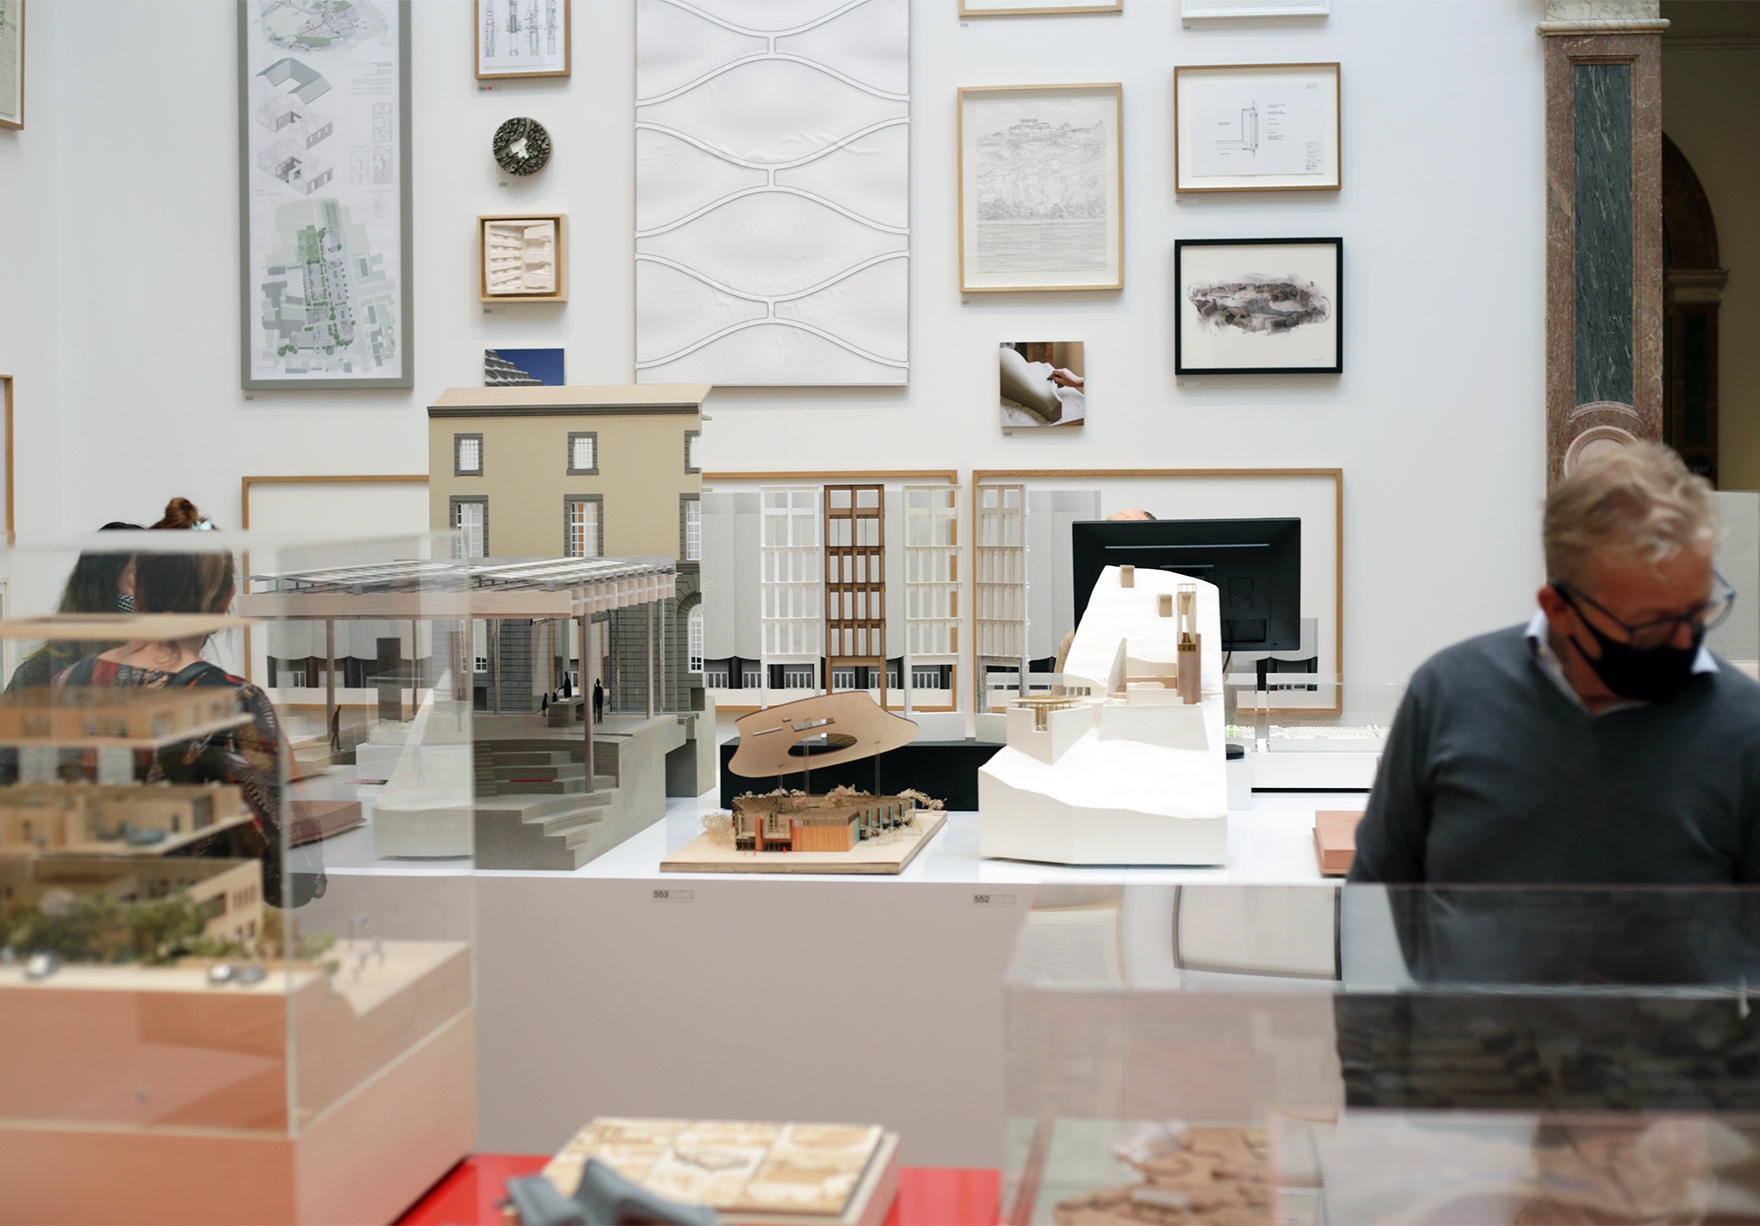 Ra Summer Exhibition Royal Academy Of Arts Faulknerbrowns Architects Sunderland City Hall Models Architecture Room Lh